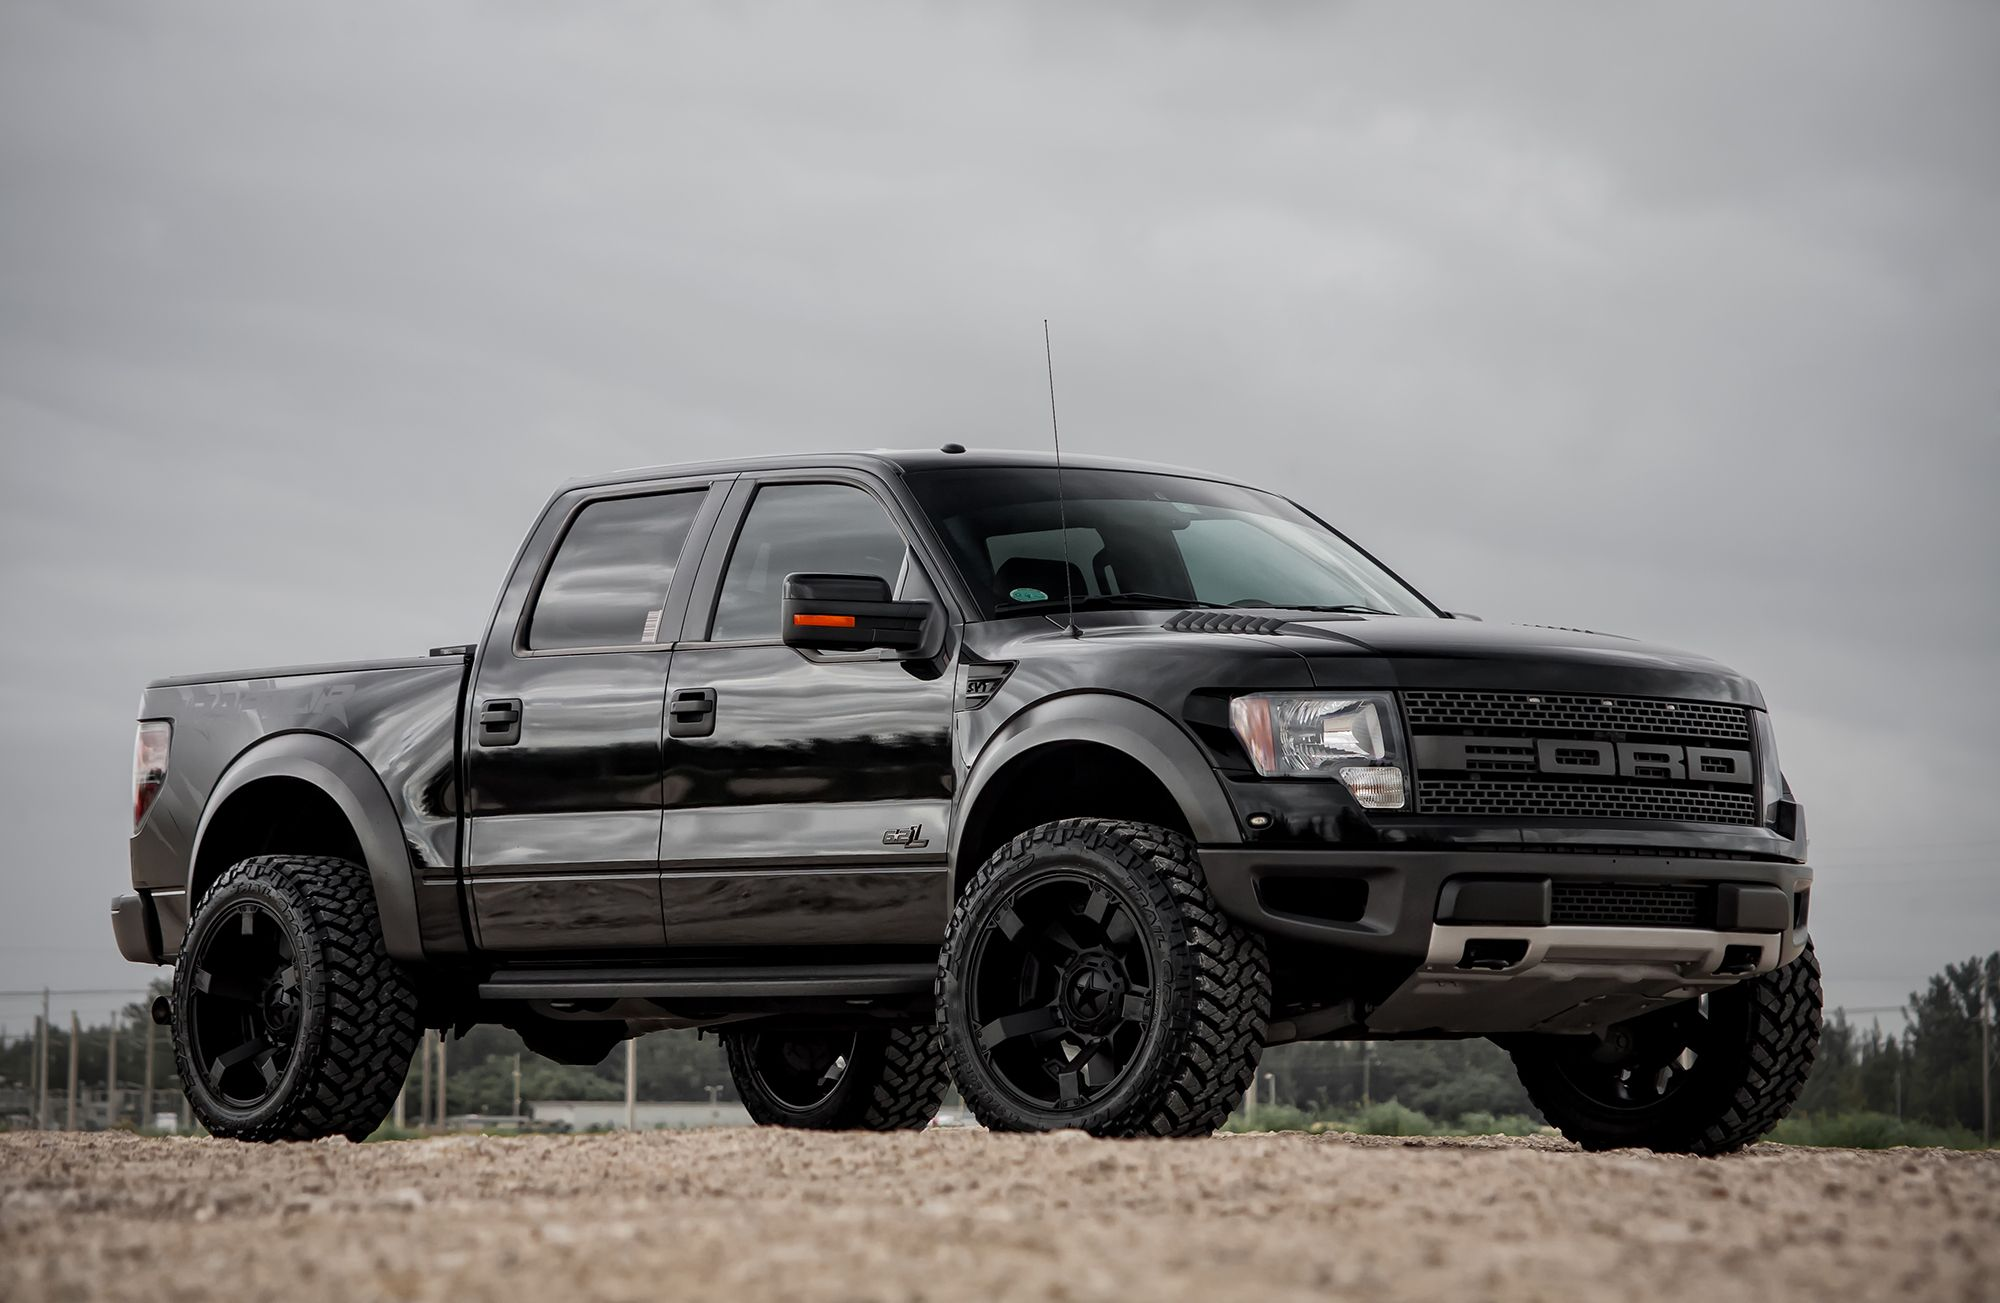 Ford raptor 2015 2014 ford f150 custom ford raptor black ford raptor